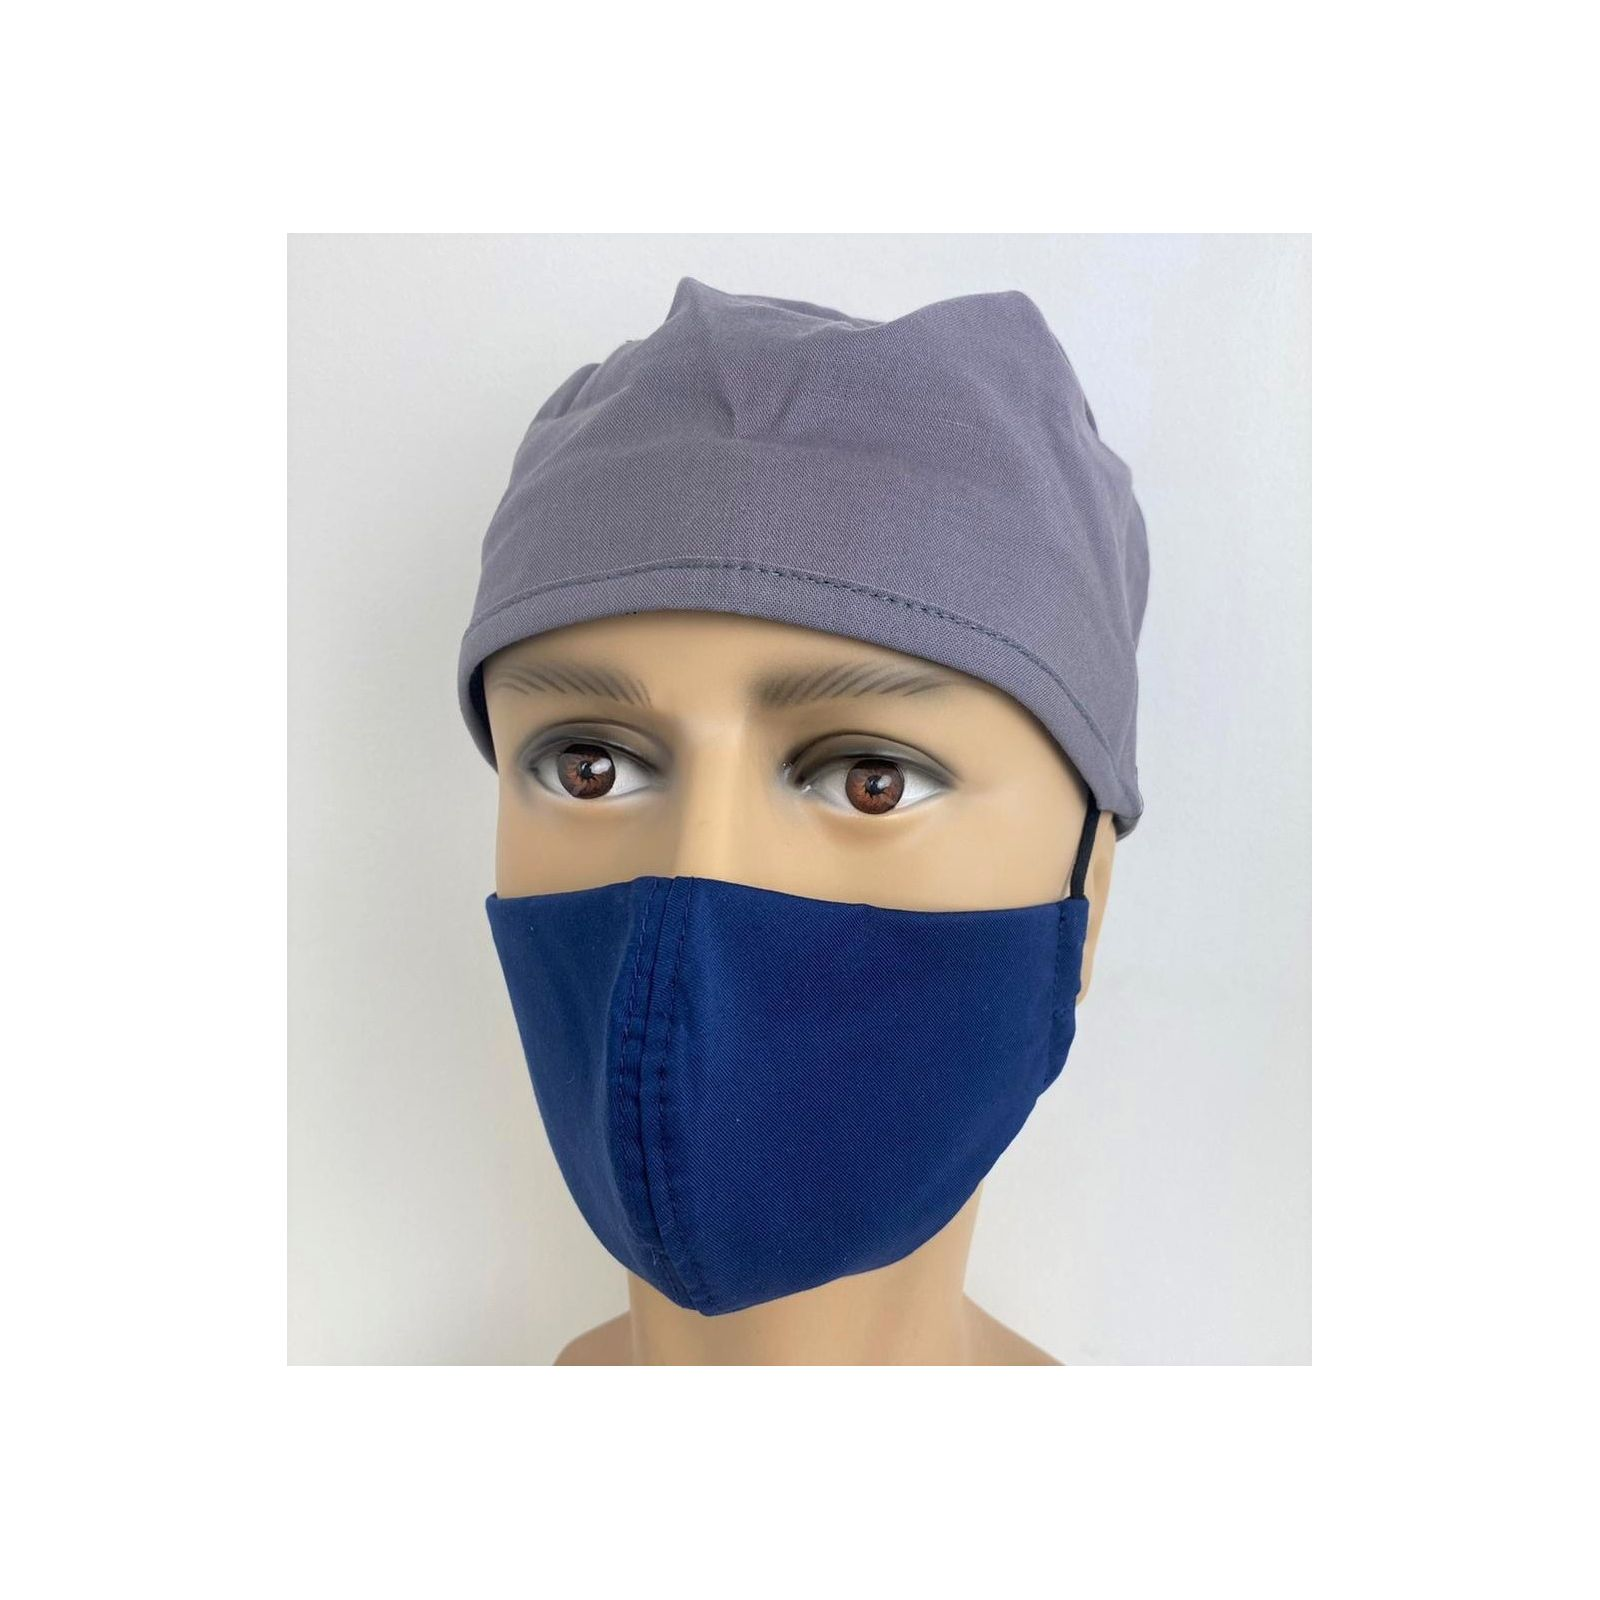 Lot 3 - Masque adulte de protection Antimicrobien (CR500X)